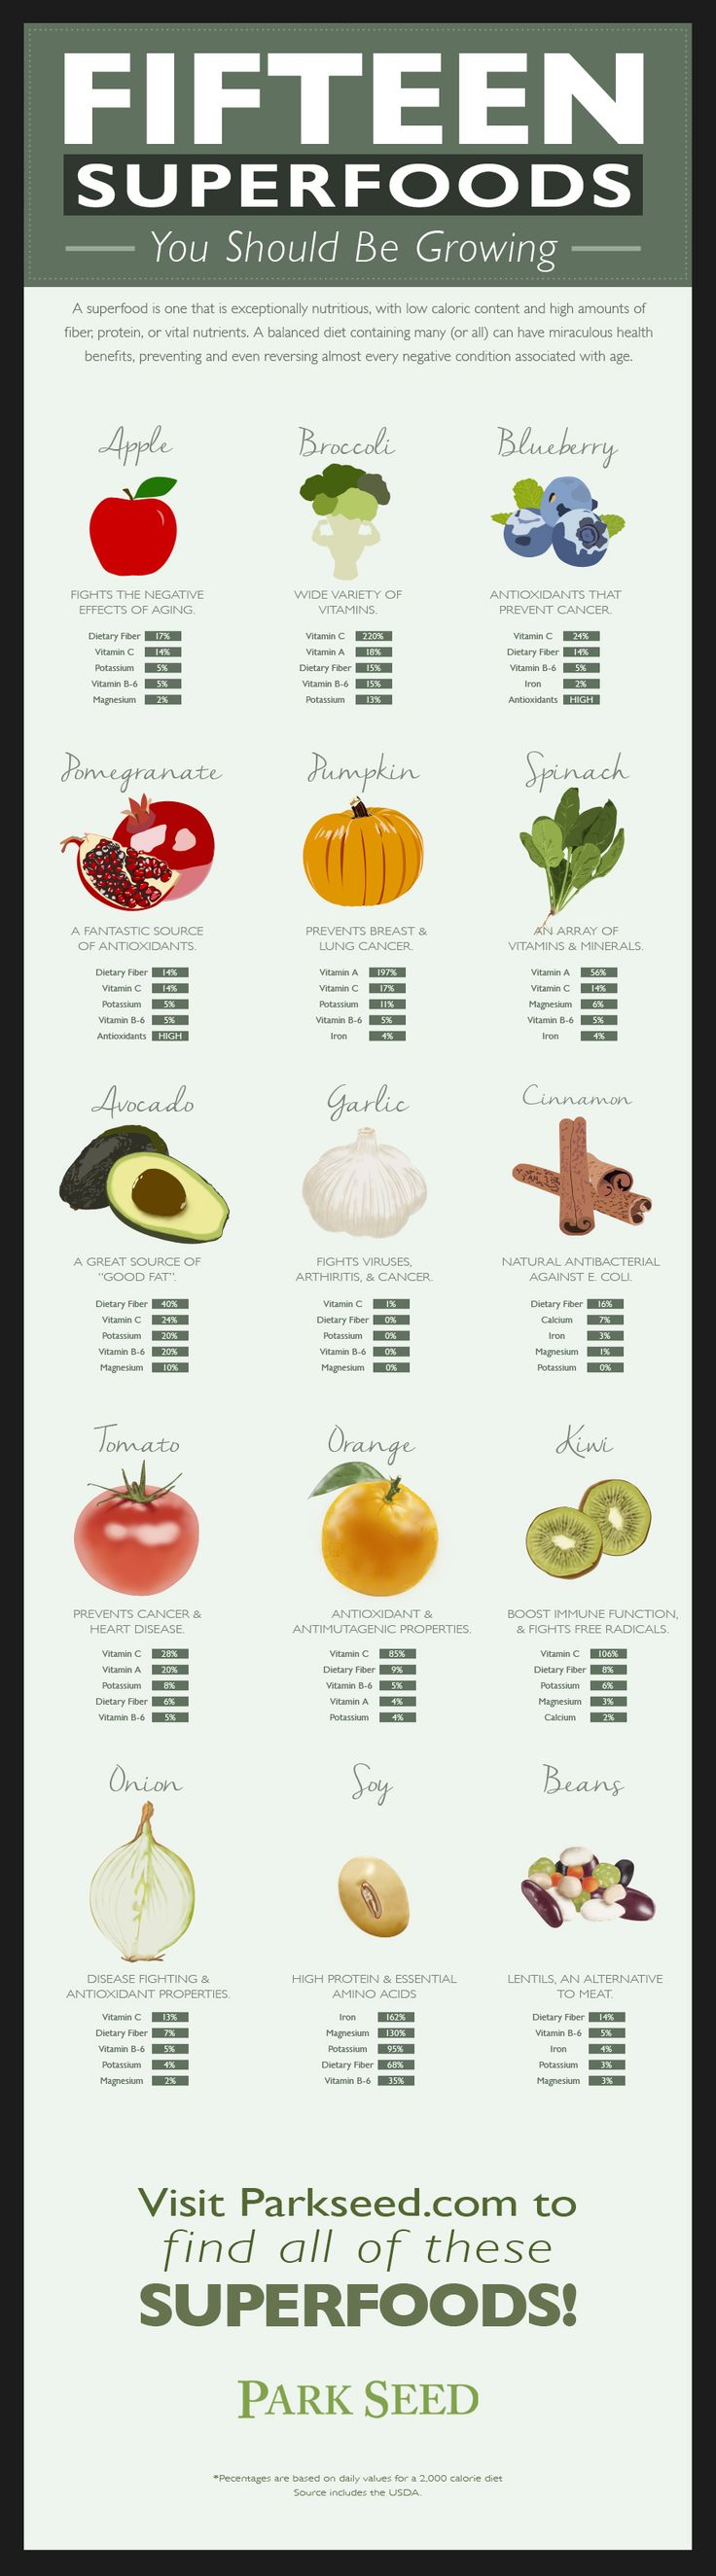 Enjoy the full nutritional value of your superfoods by